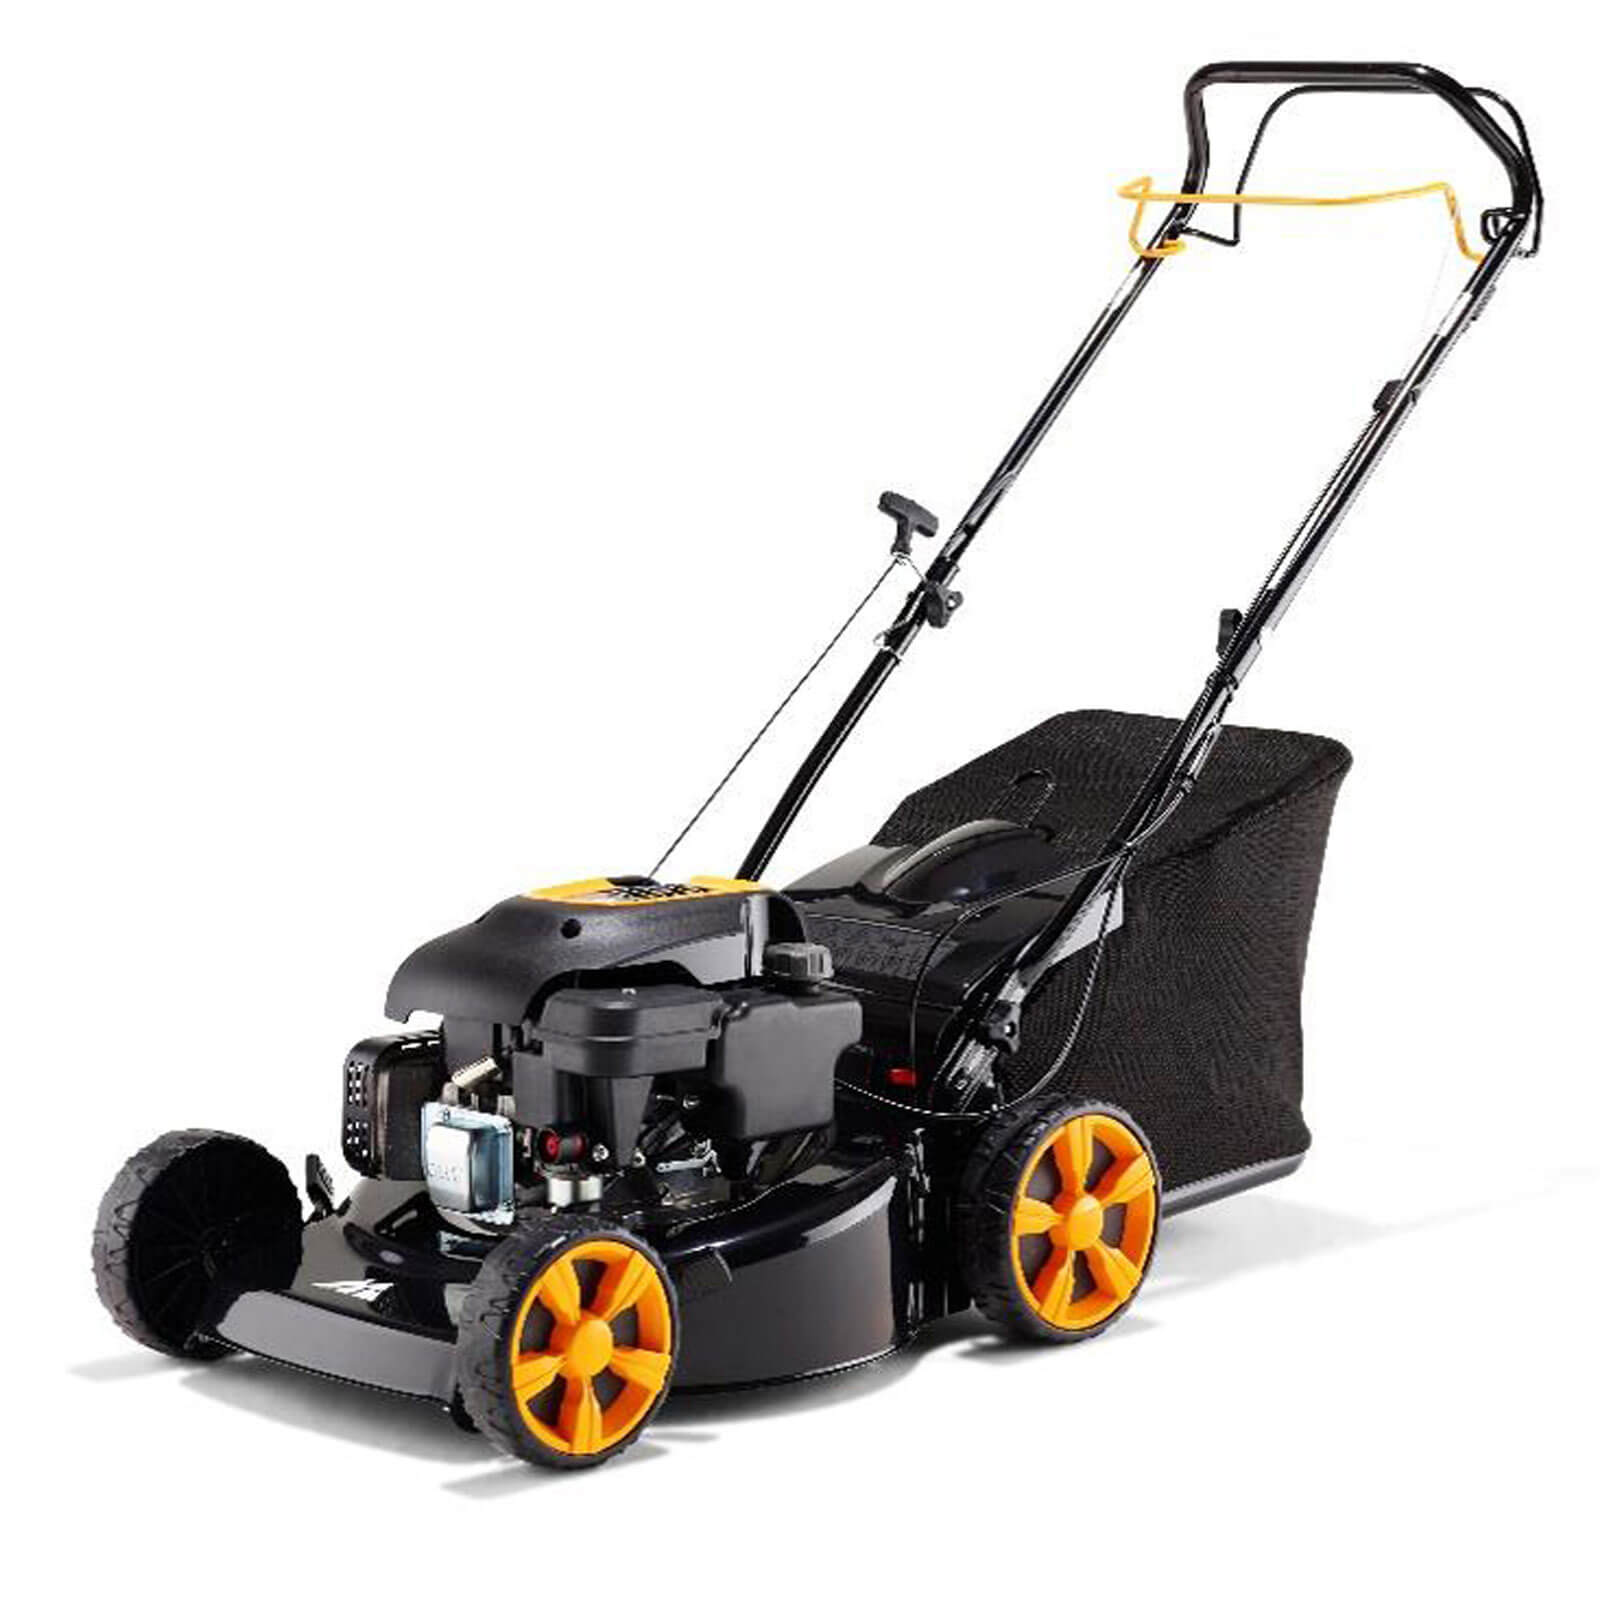 Image of McCulloch M46-110R Self Propelled Petrol Rotary Lawnmower 460mm